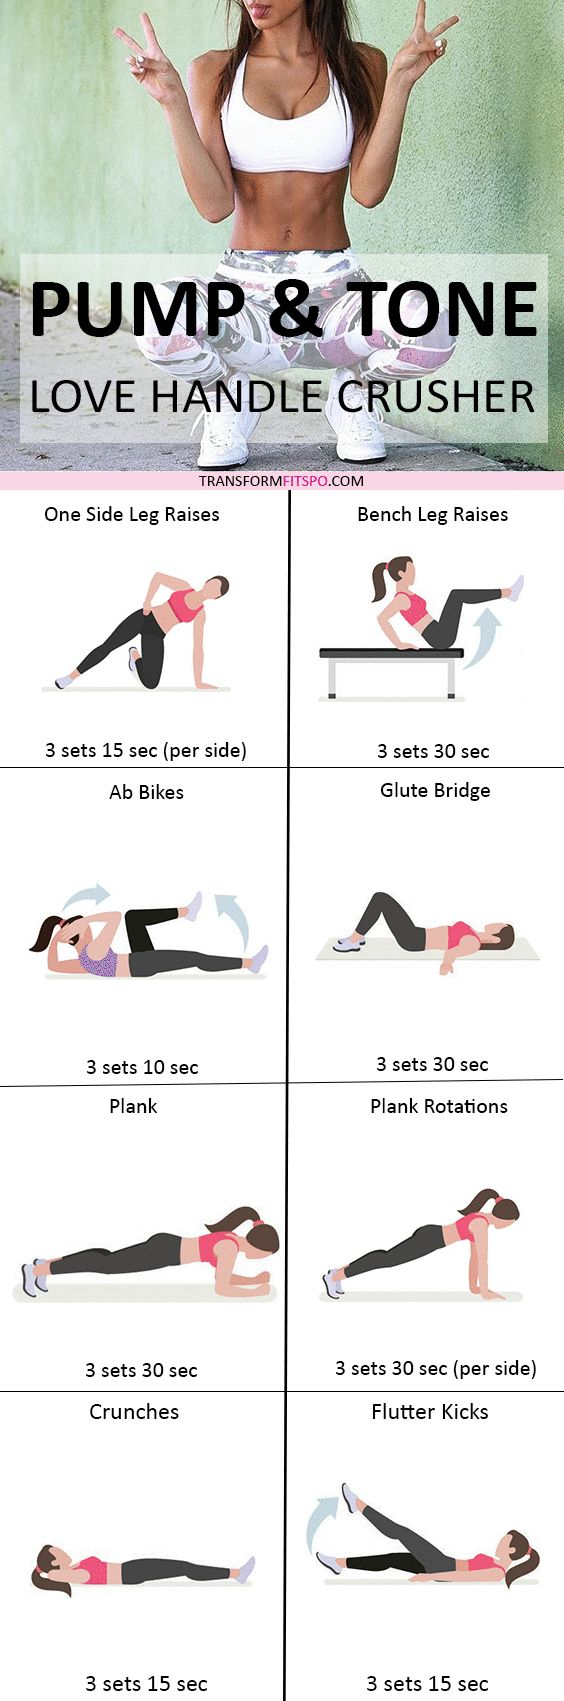 Did this workout destroy your love handles? Repin if so! Read the post for all the workout information!